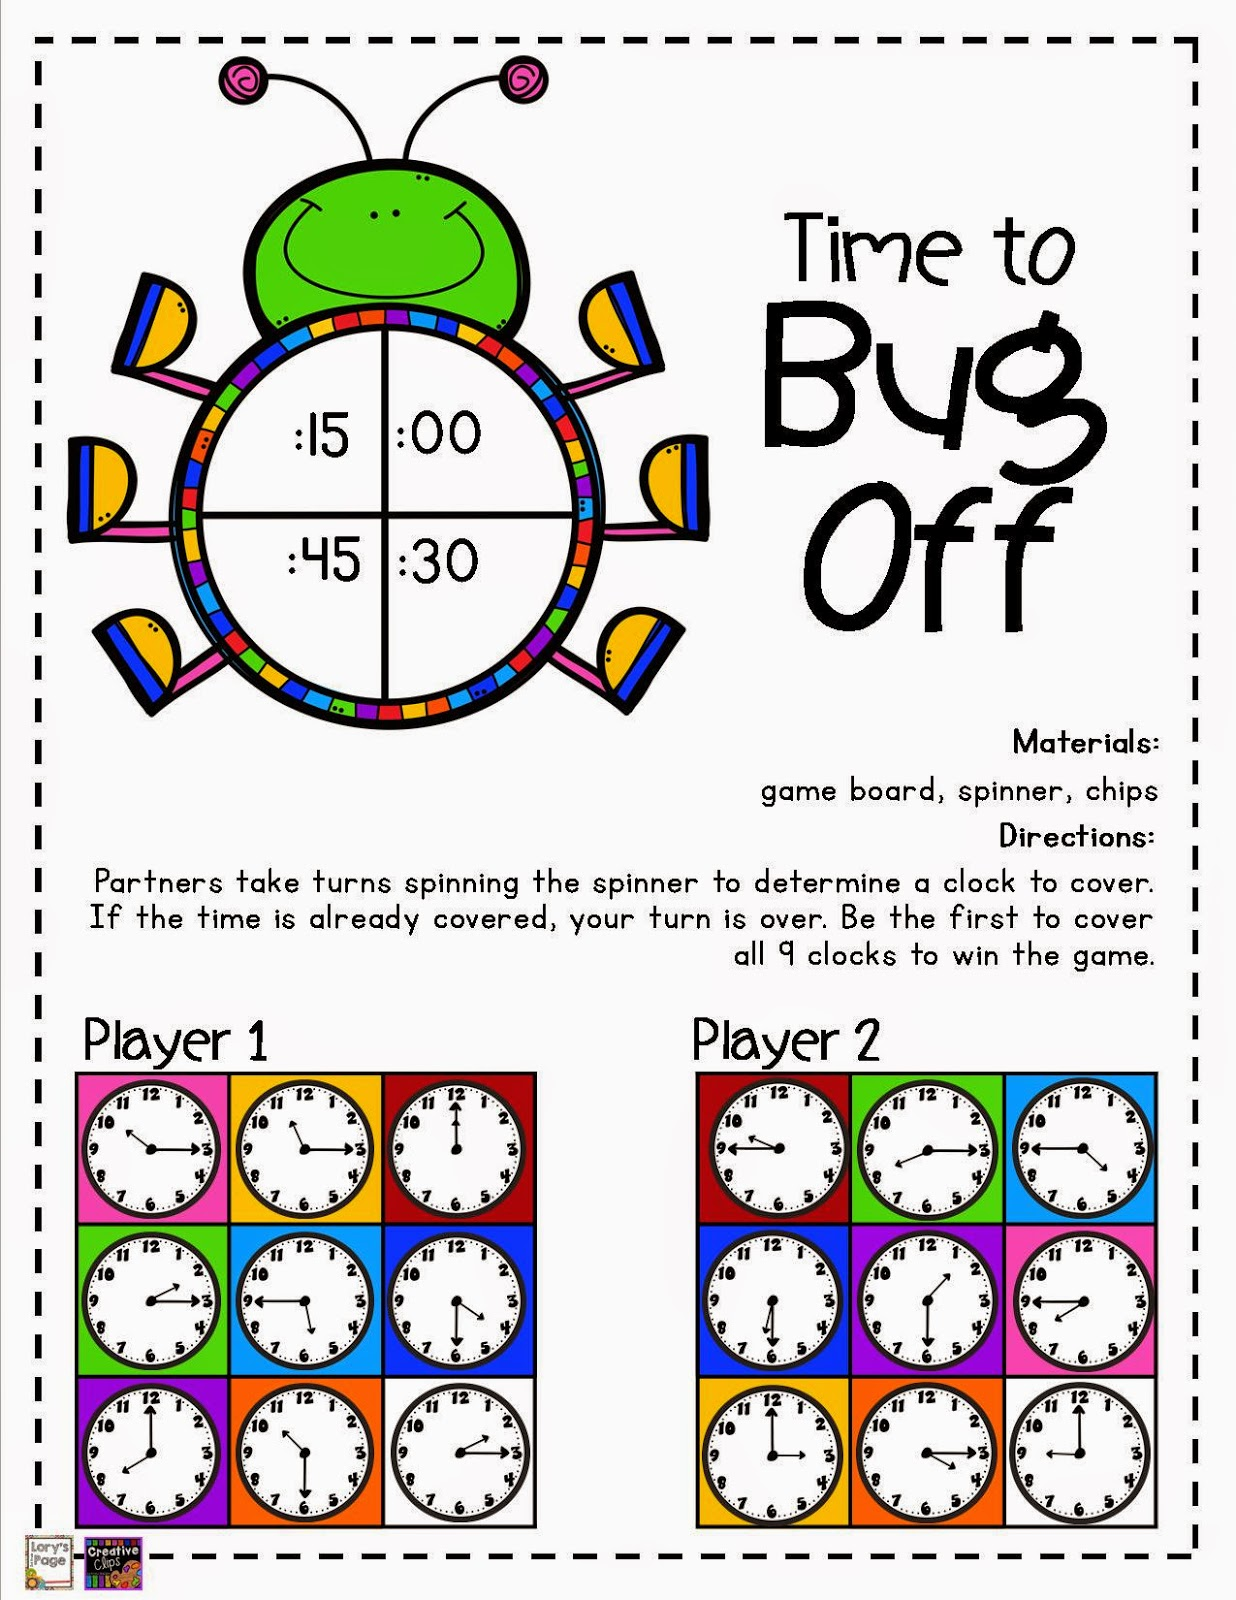 Lory S 2nd Grade Skills Telling Time Game Boards